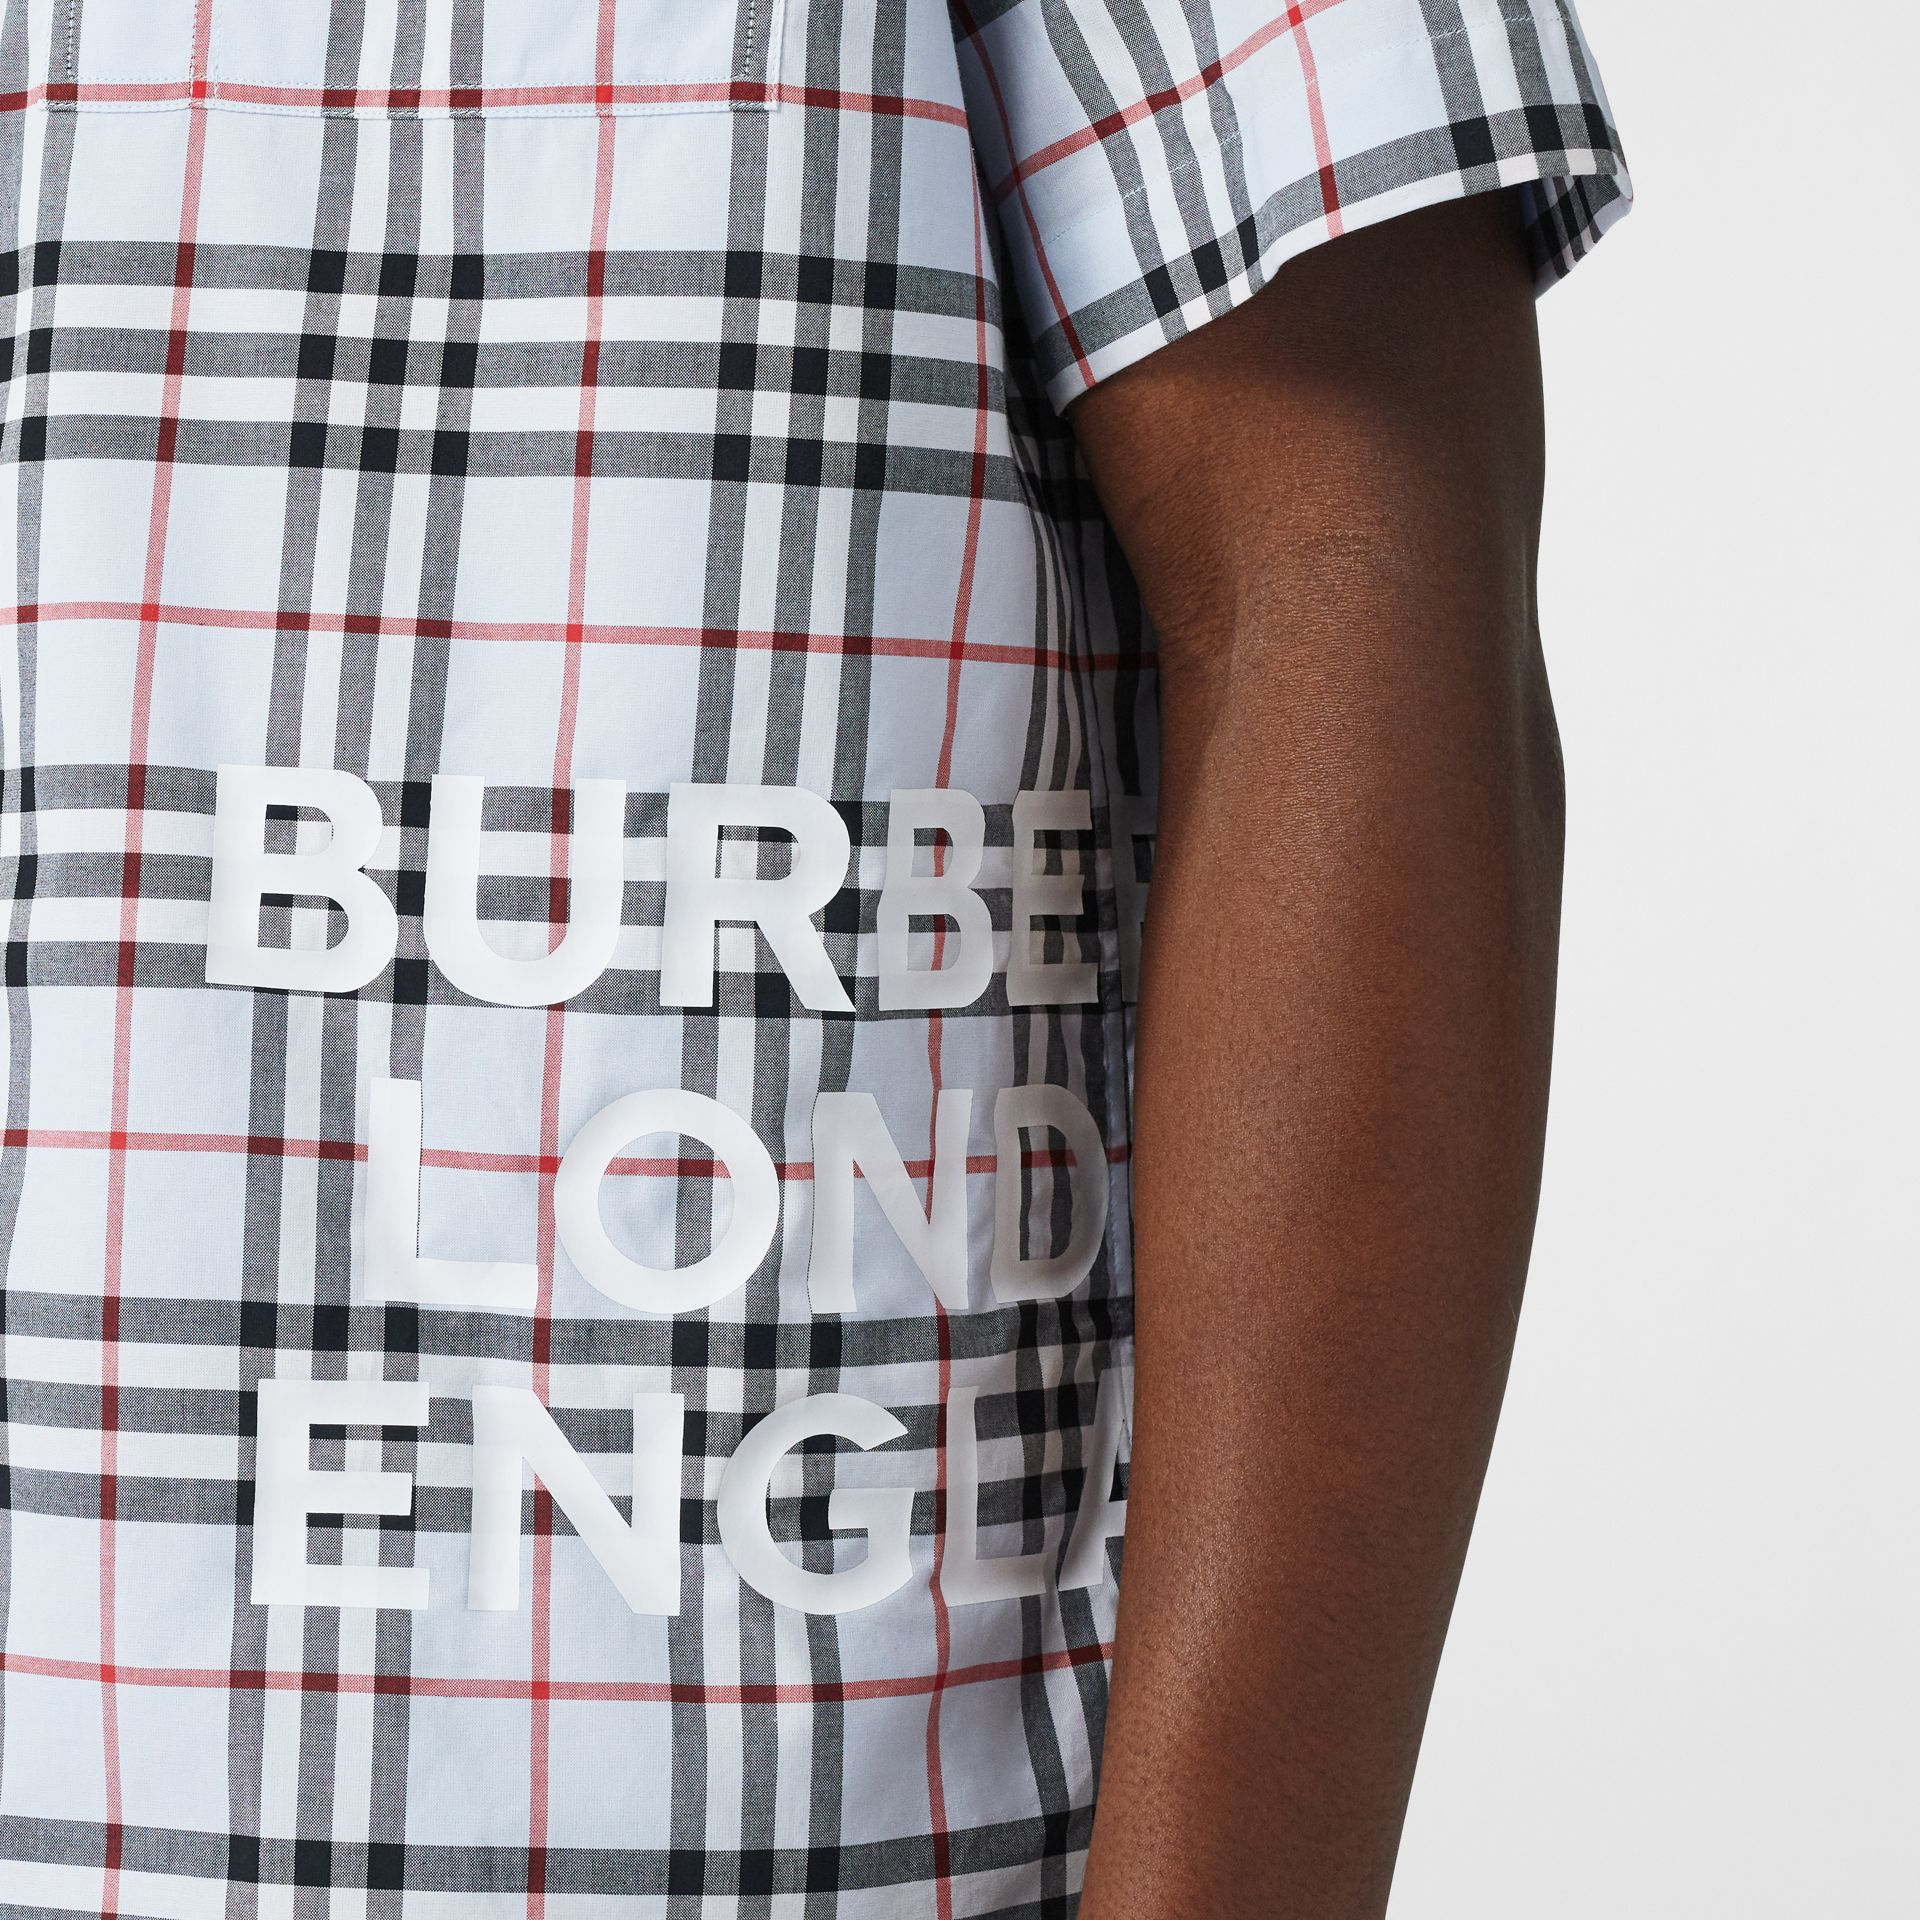 Short-sleeve Vintage Check Cotton Oversized Shirt in Pale Blue - Men | Burberry United States - gallery image 5